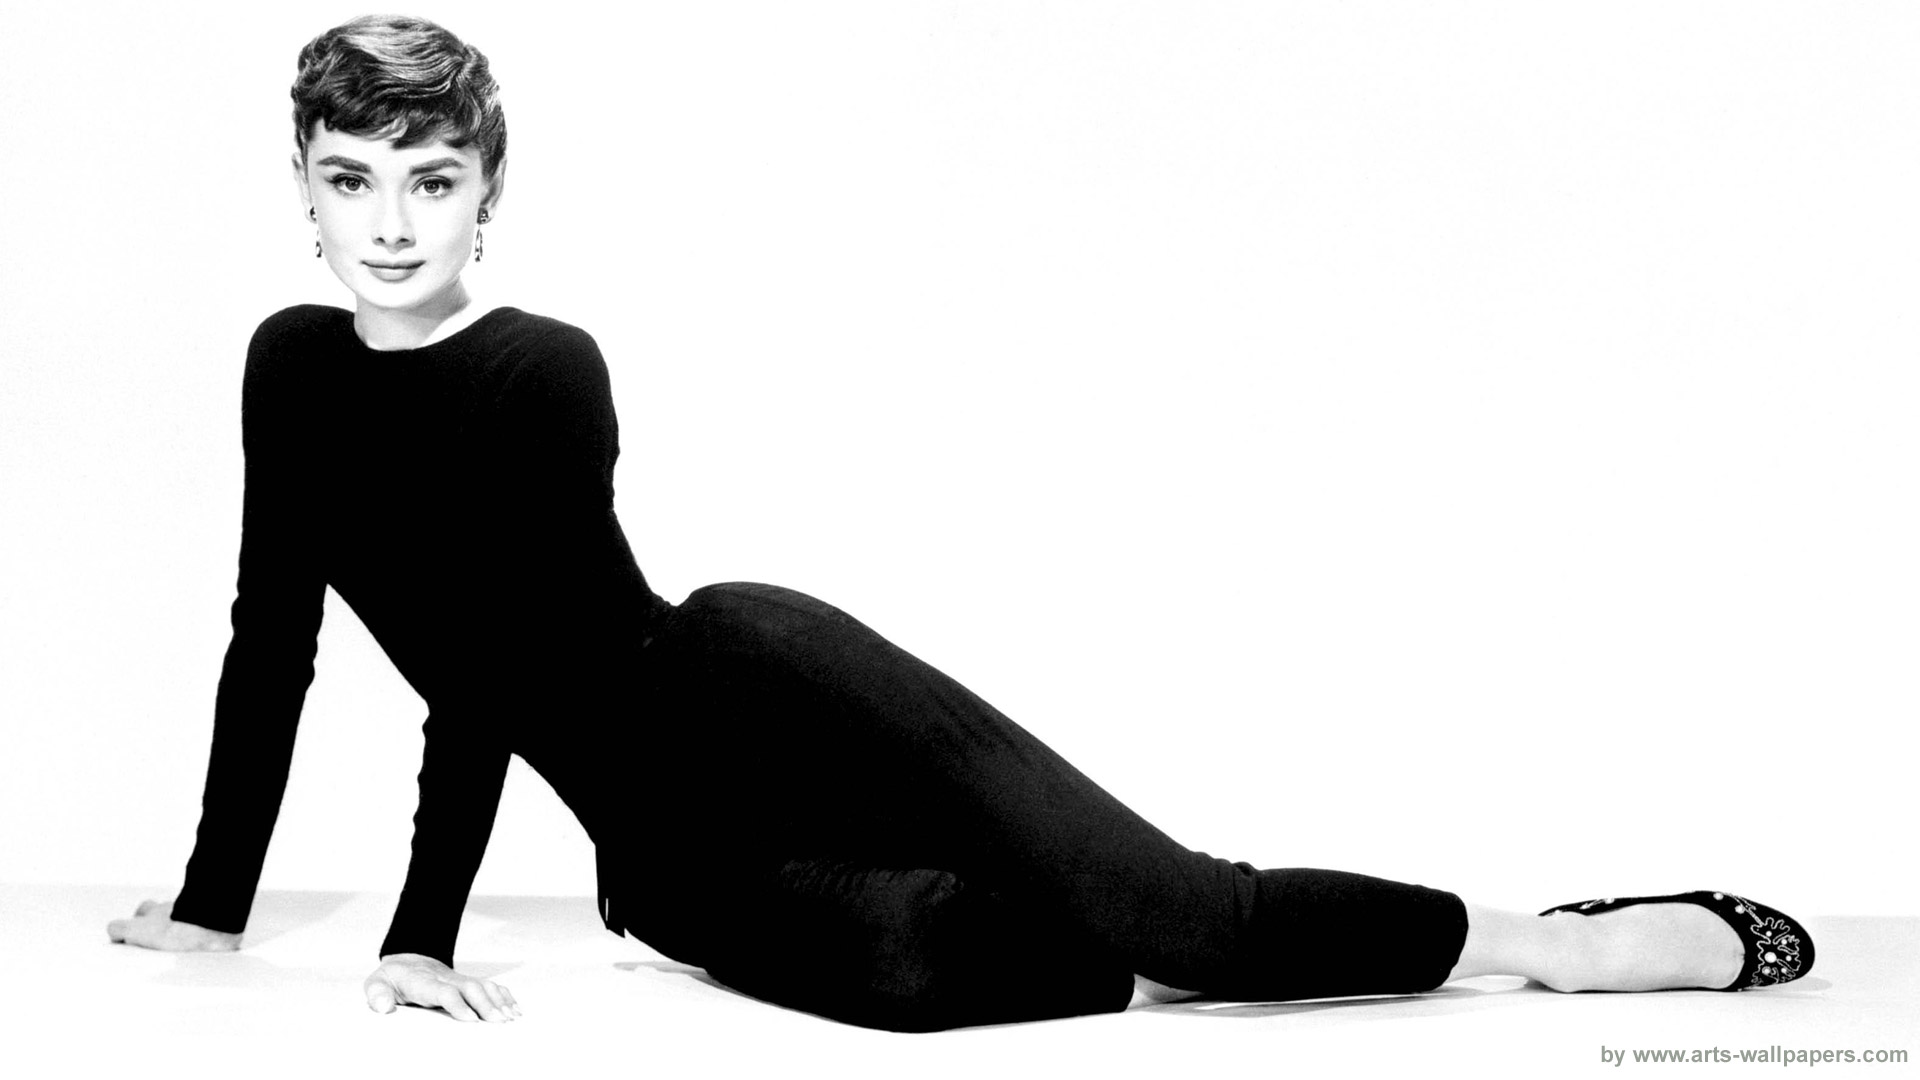 Audrey Hepburn 1920 x 1080 Desktop Wallpapers Full HD Widescreen 1920x1080